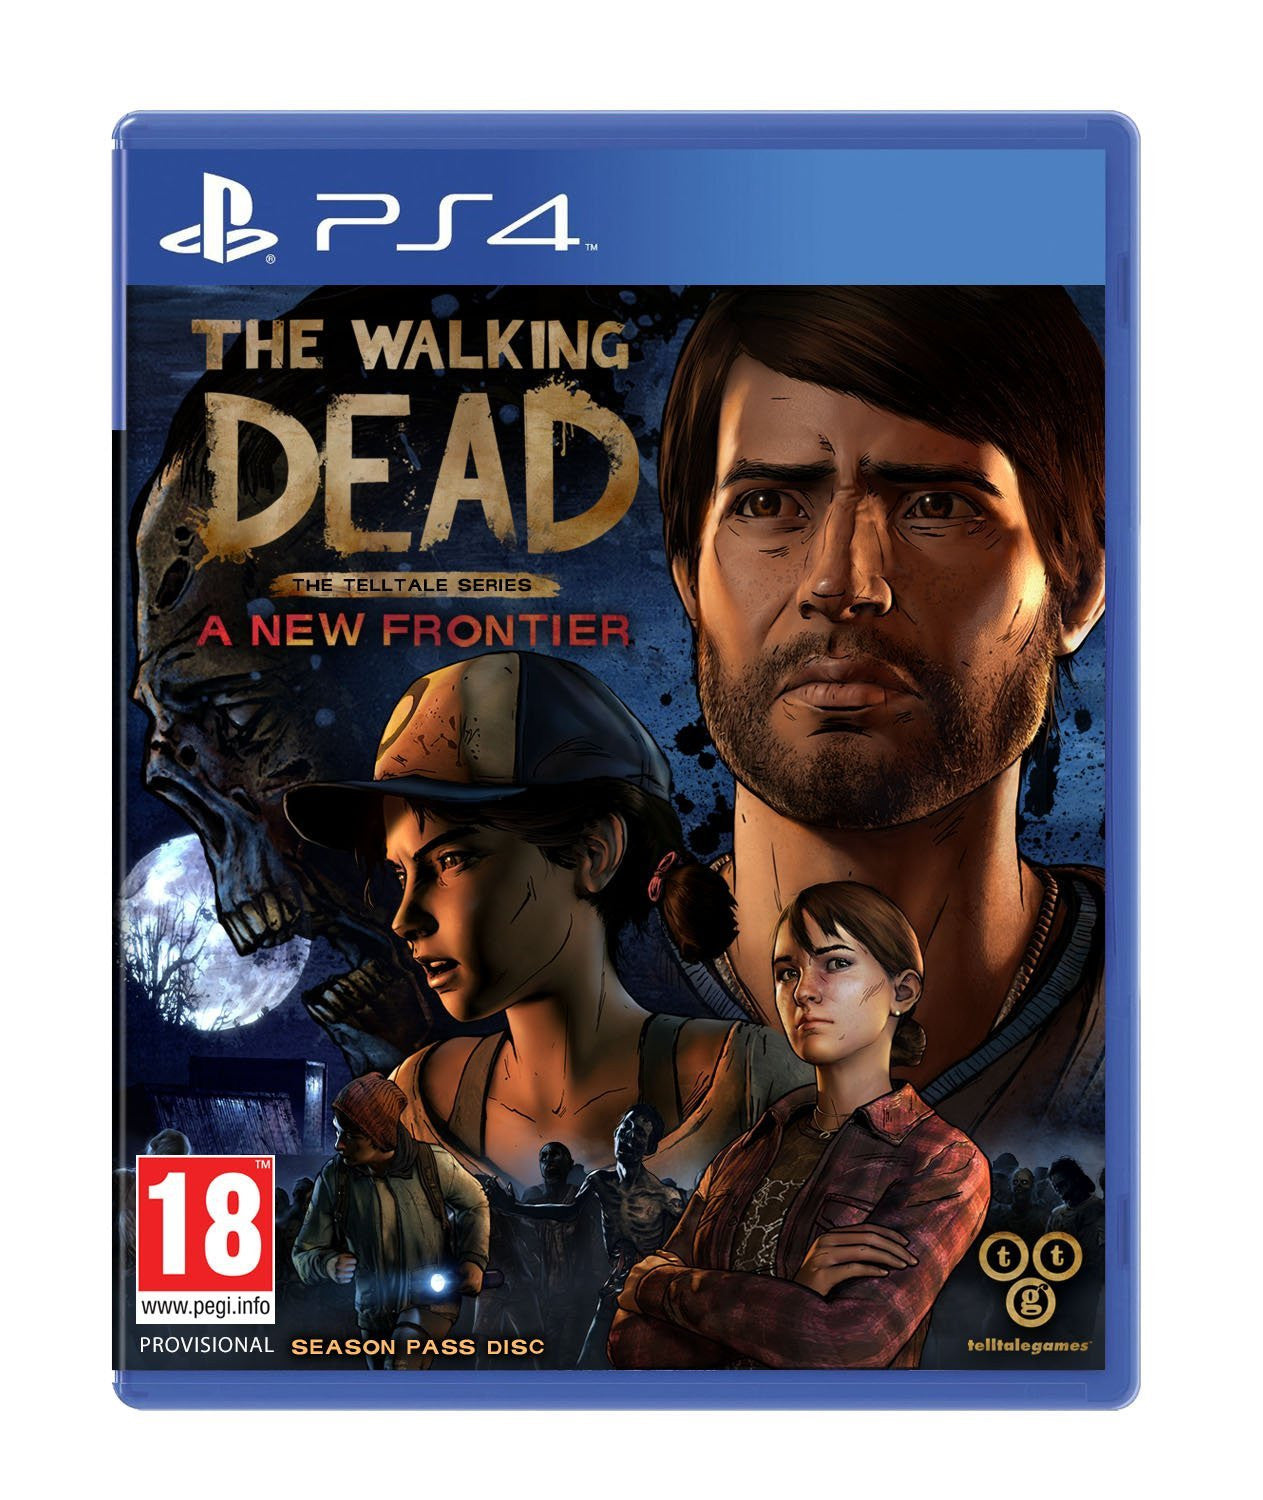 The Walking Dead - The Telltale Series: A New Frontier - PS4